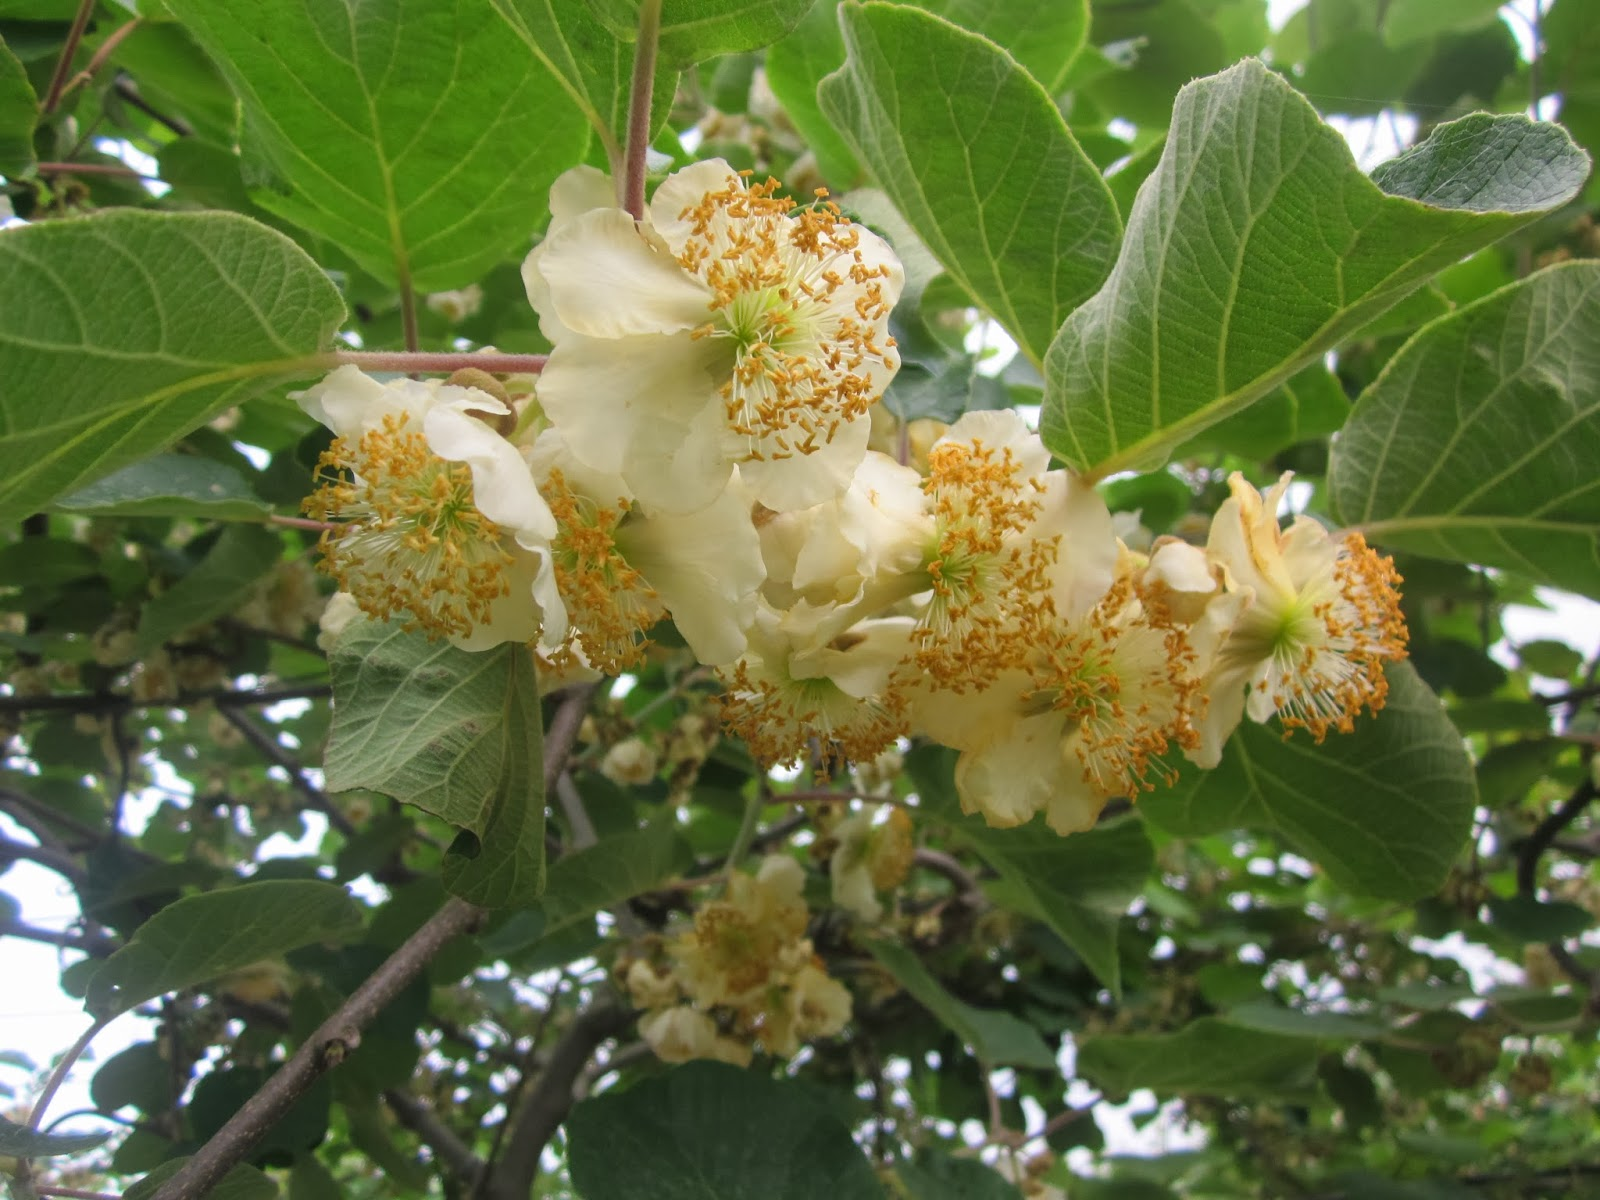 Diaries Of An Exiled Persian Kiwi Blossoms In Persia